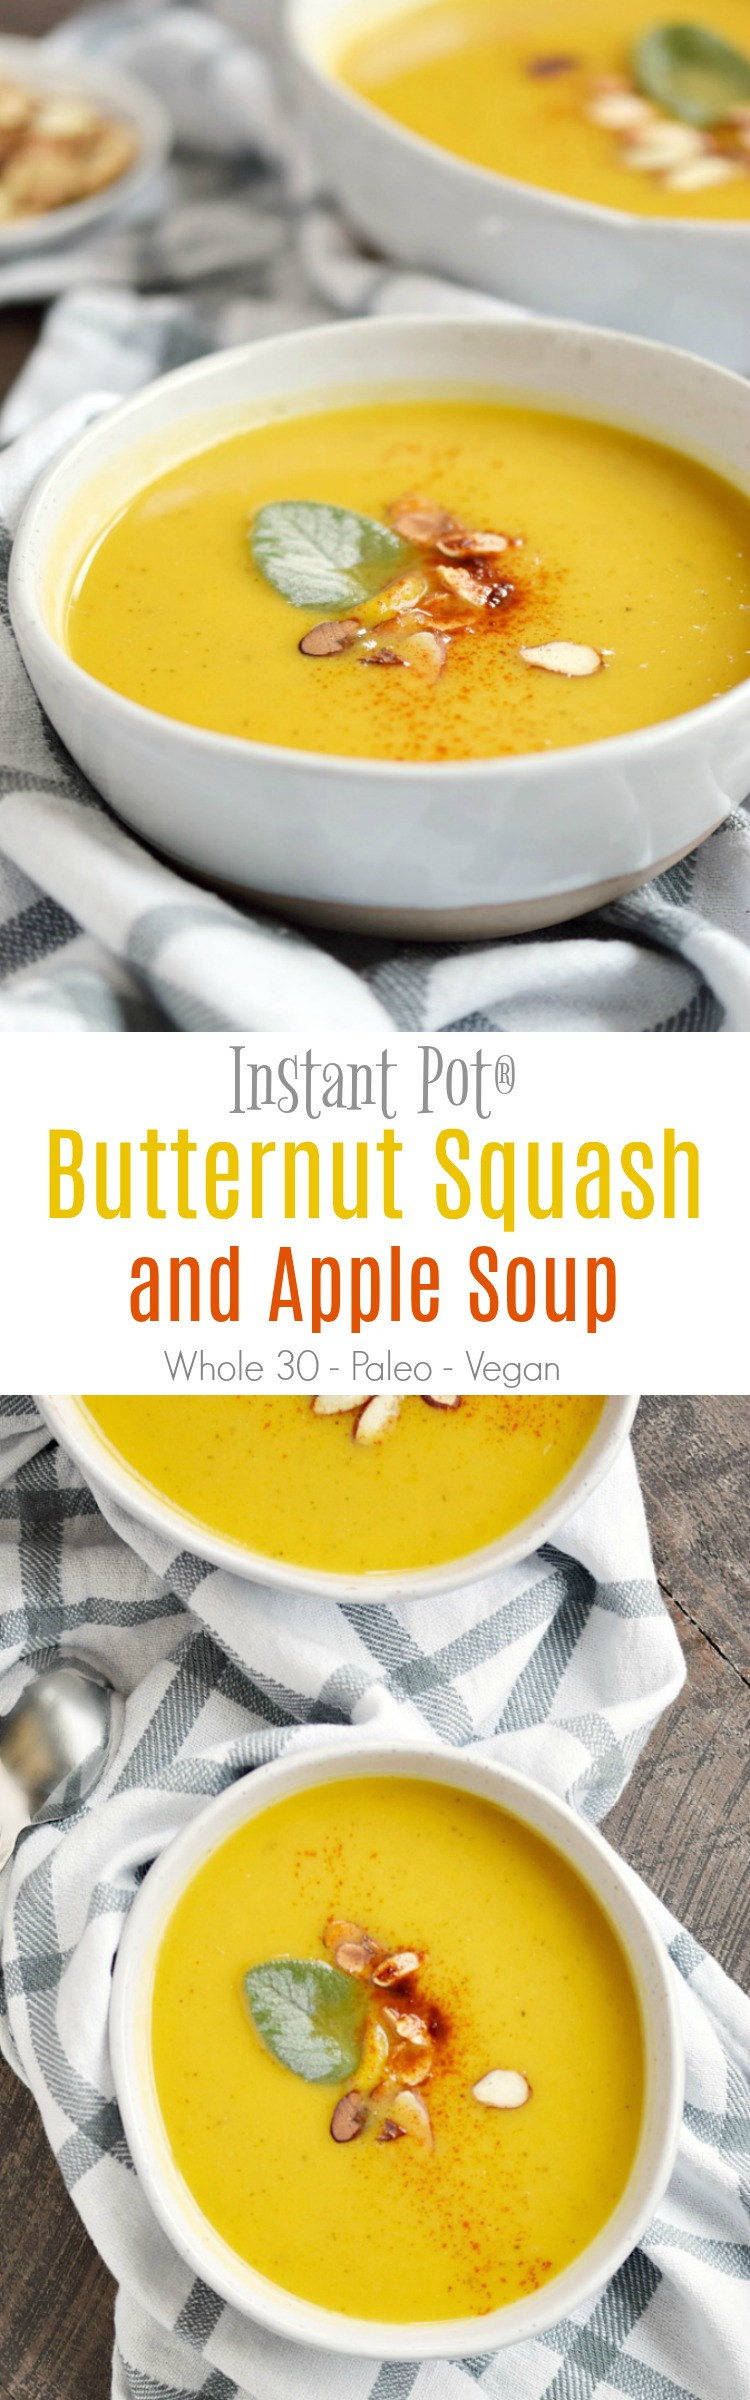 Instant Pot Butternut Squash Soup  Instant Pot Butternut Squash and Apple Soup Cooking With